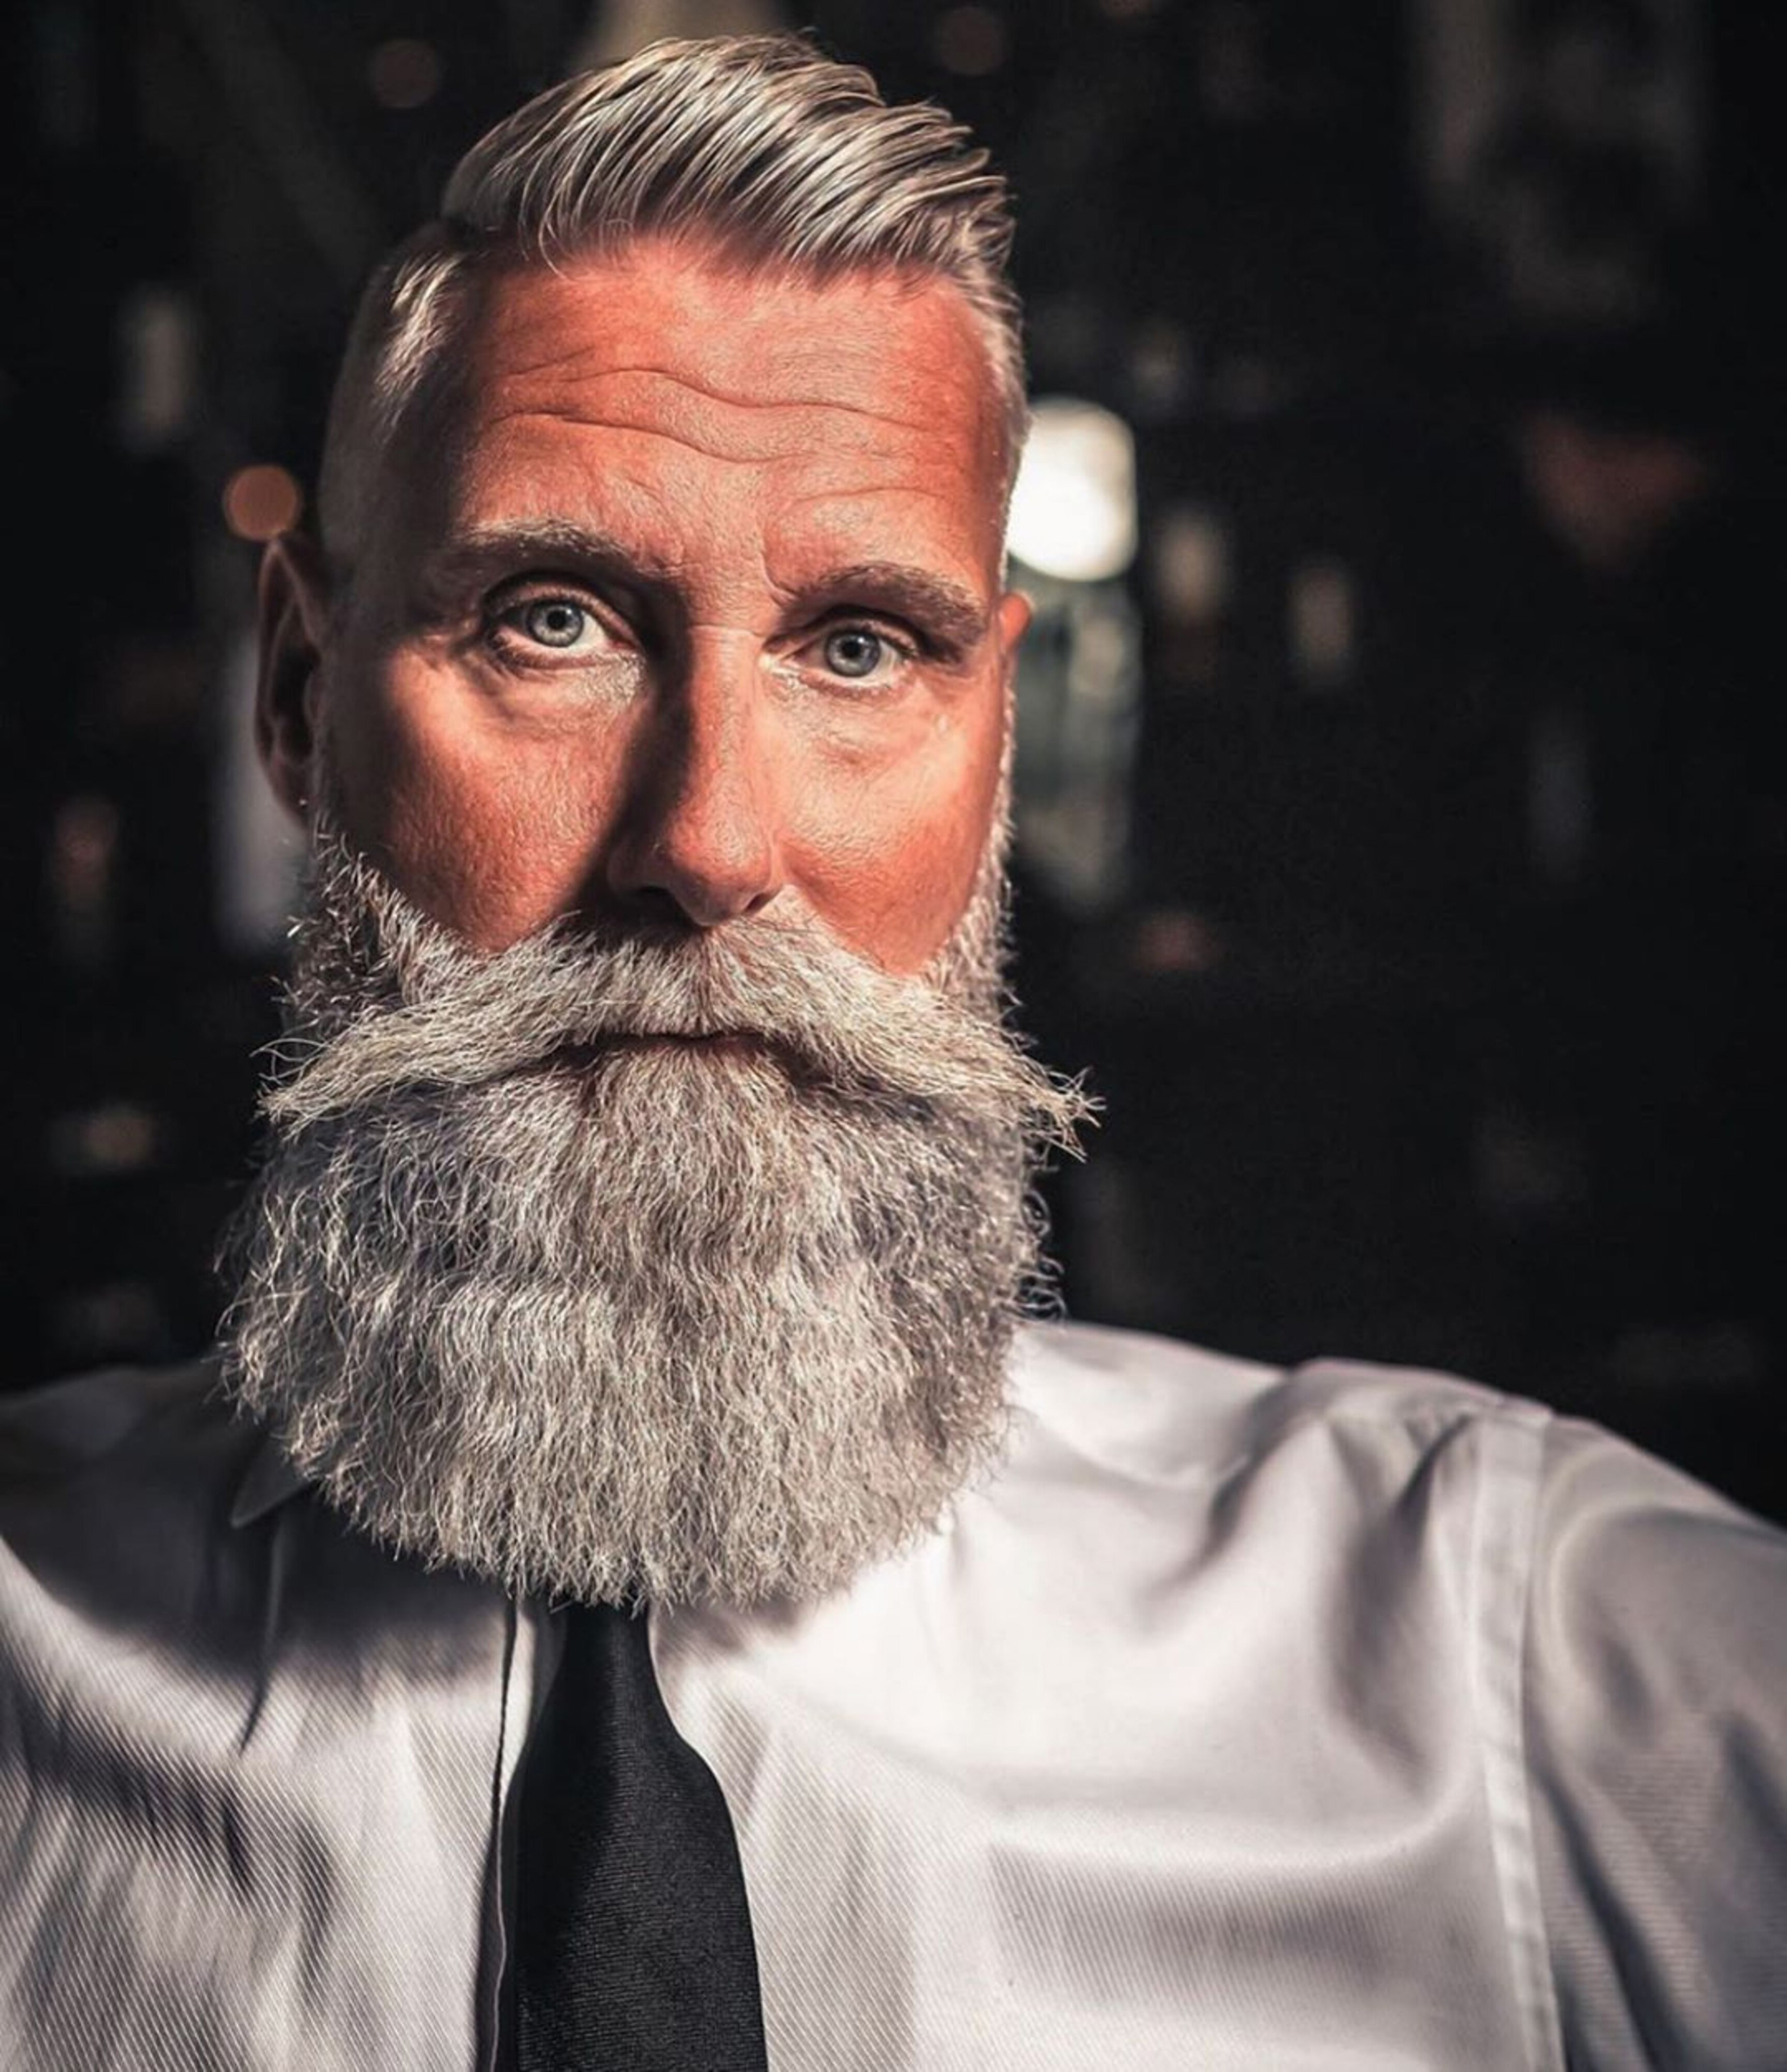 A short haired style with a long beard.